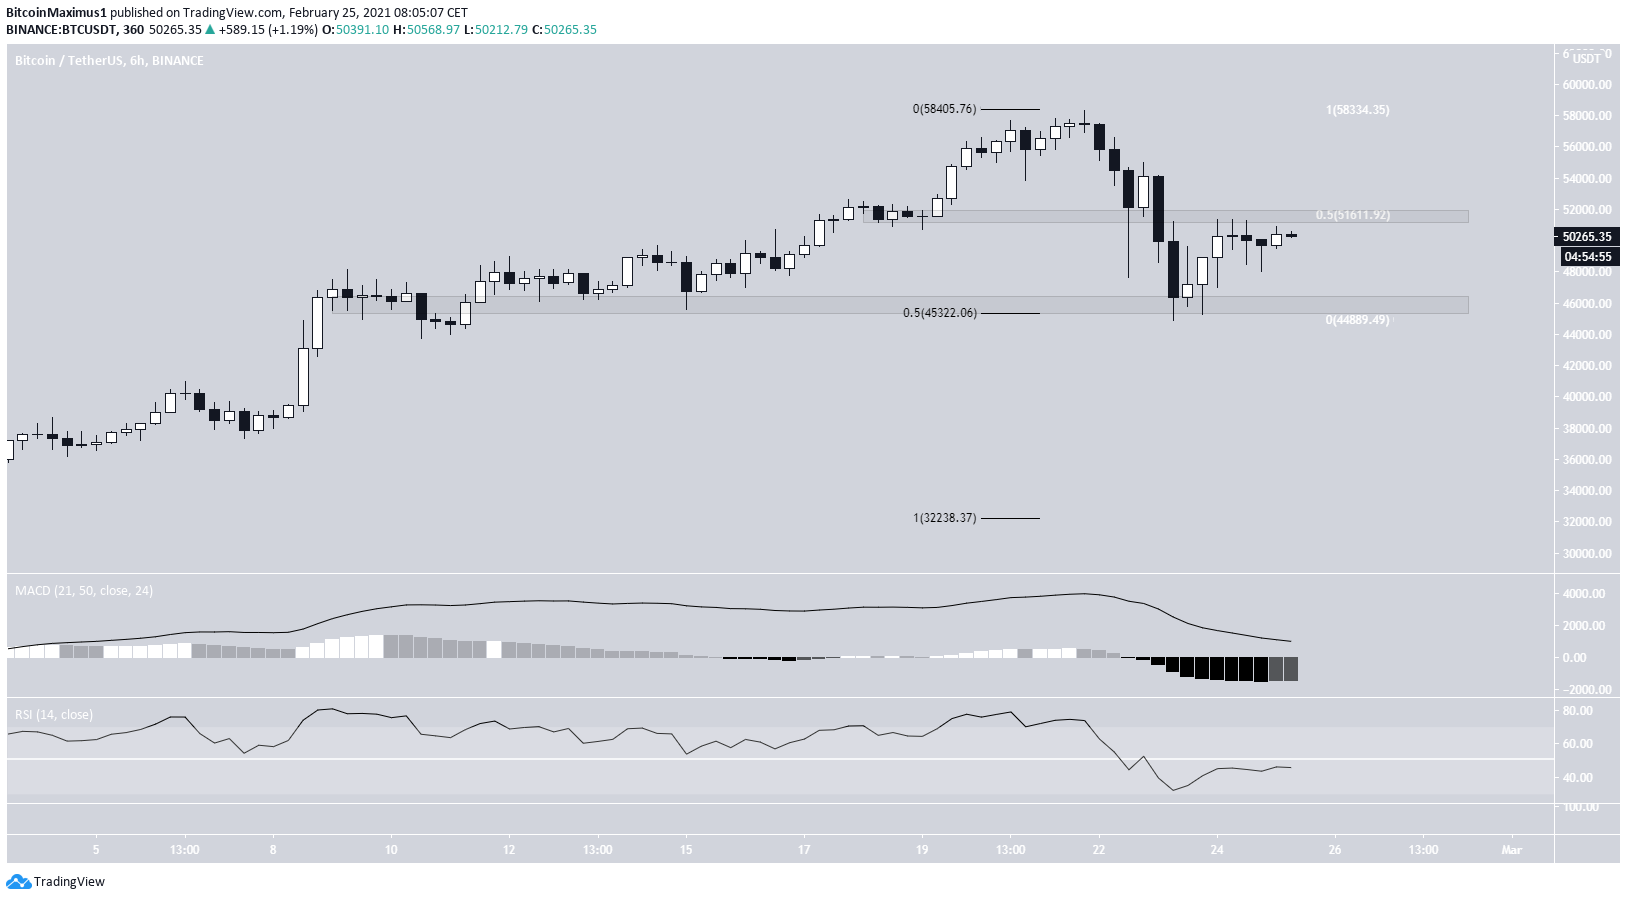 BTC Six-Hour Movement